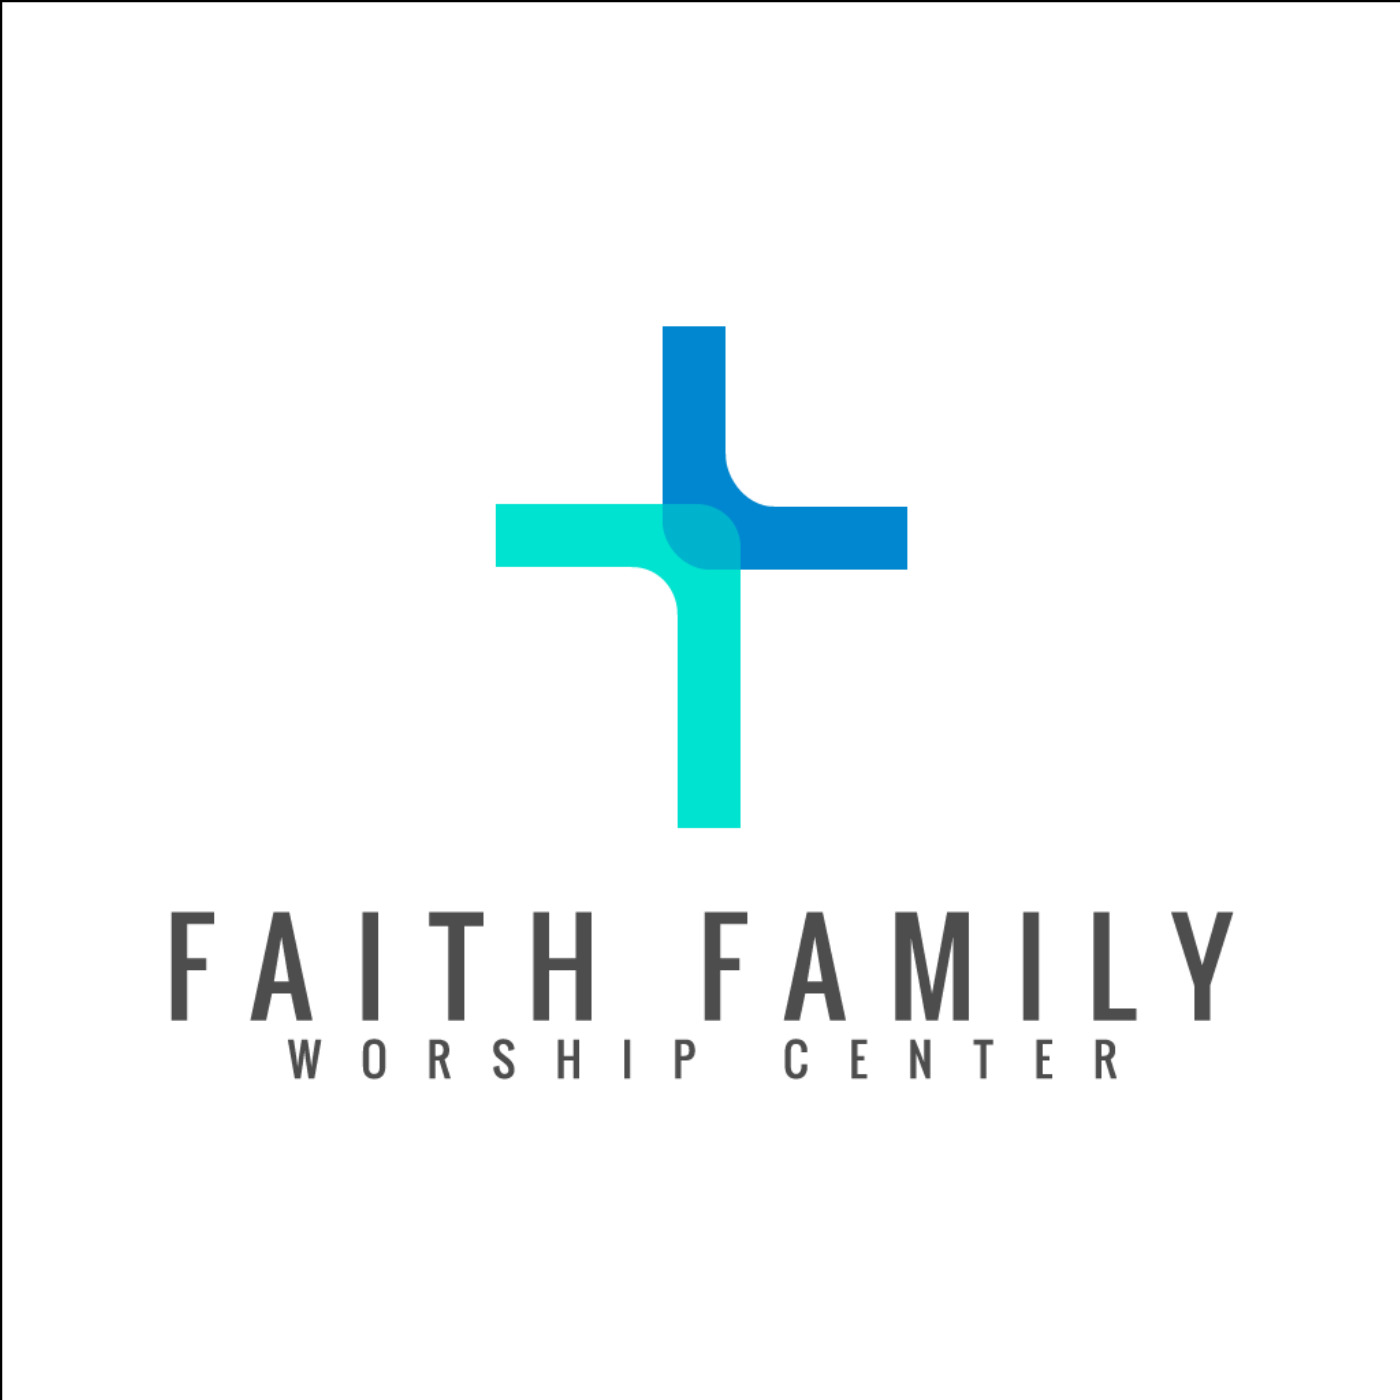 Faith Family Worship Center